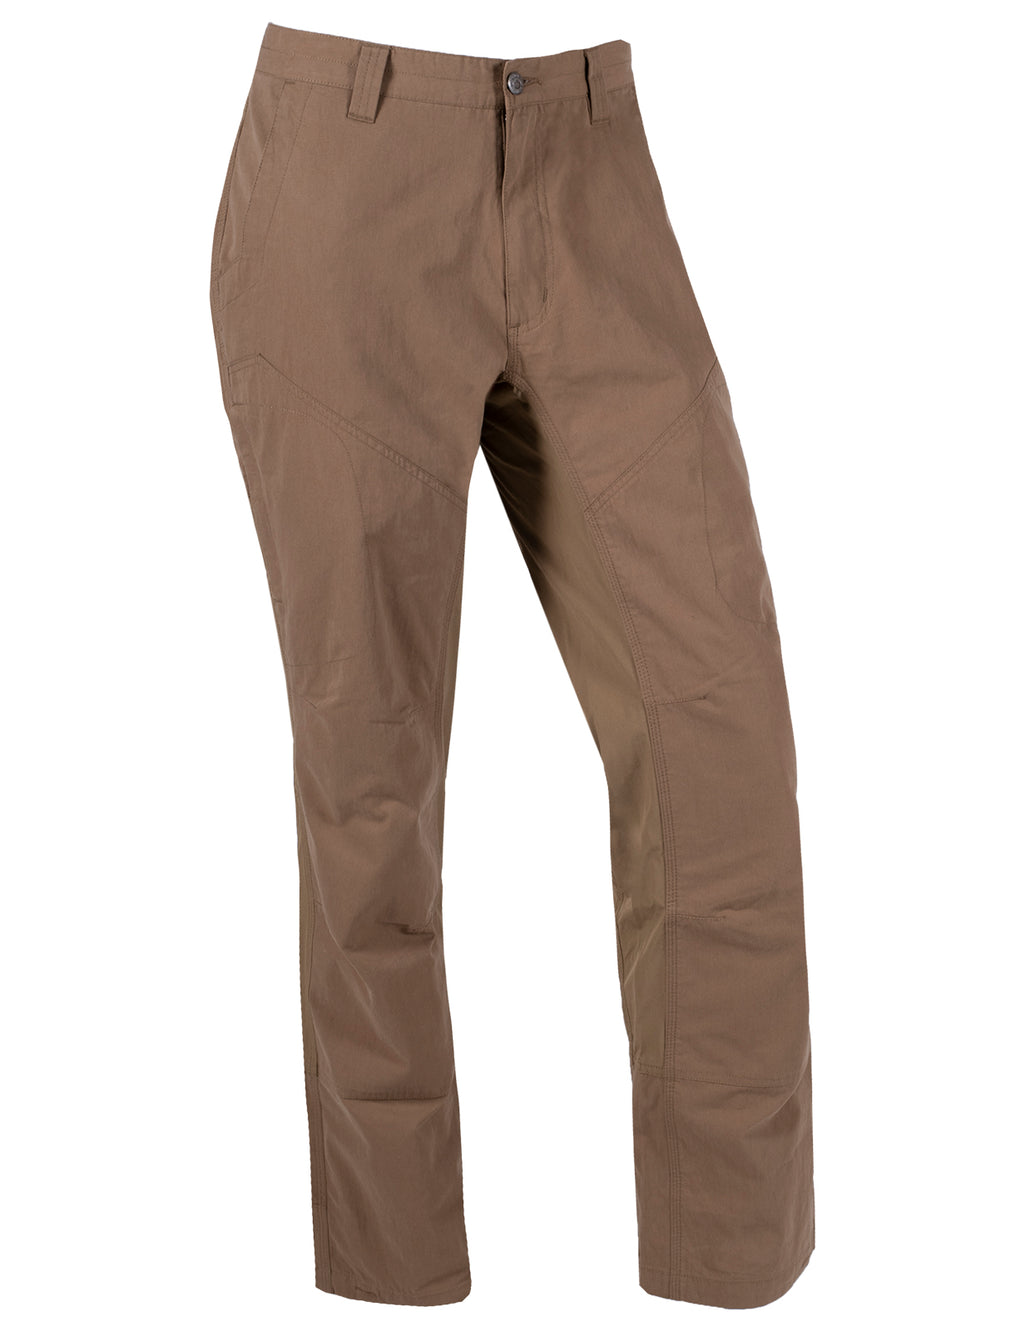 Men's Original Trail Pant | Mountain Khakis | A blend of durability and mobility with features such as zipper pocket on thighs, reinforced knee and seat panels, ¾ length action gusset, reinforced pocket bags, and triple-stitched seams. Ideal as a hiking, camping, climbing, outdoor lifestyle pant.